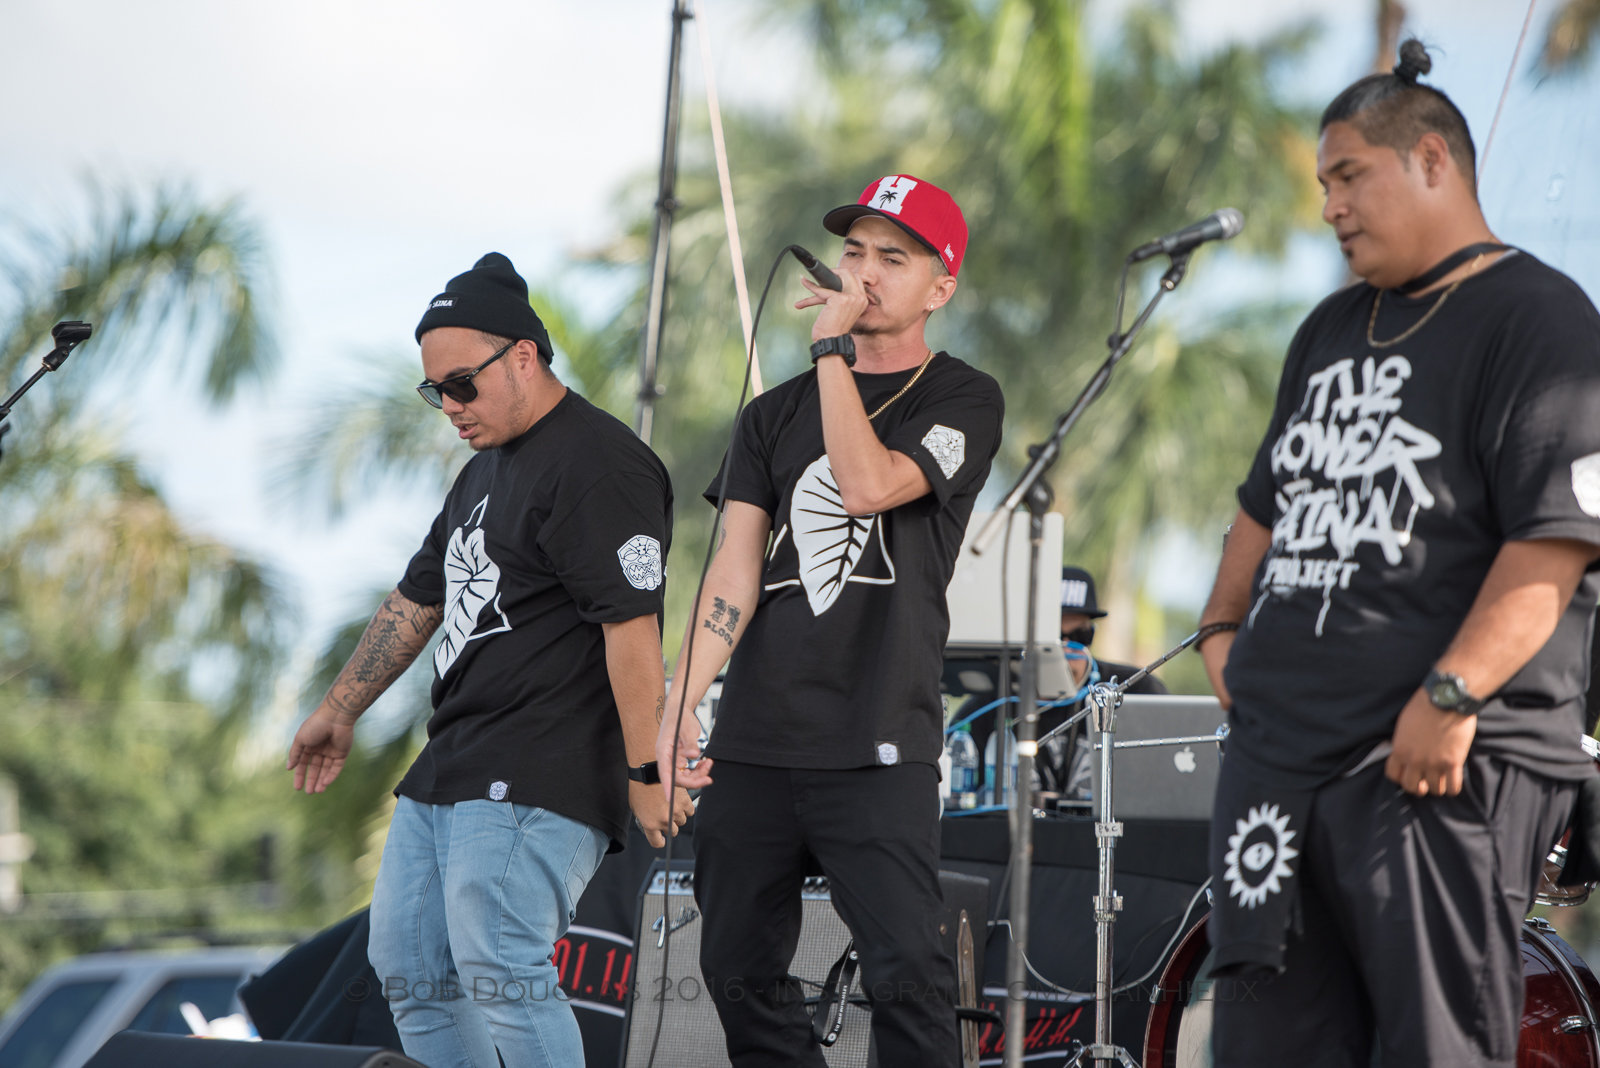 Group performing on stage.